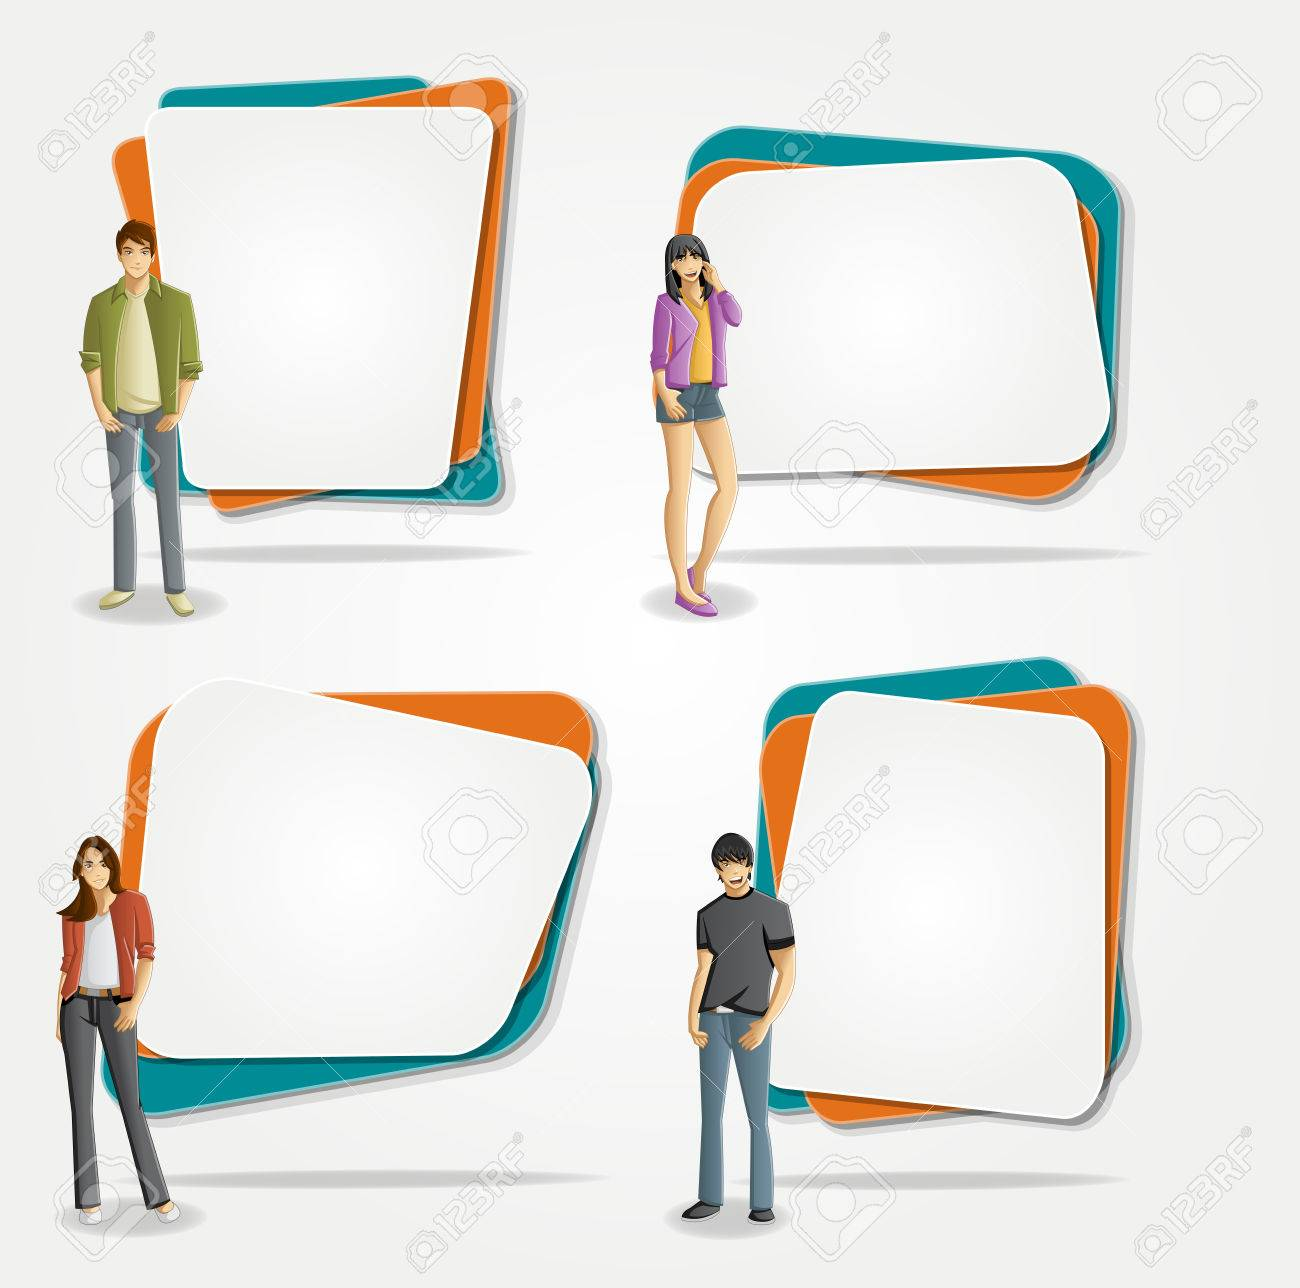 Vector banners / backgrounds with cartoon young people. Design text box frames. Manga anime teenagers. - 58793842